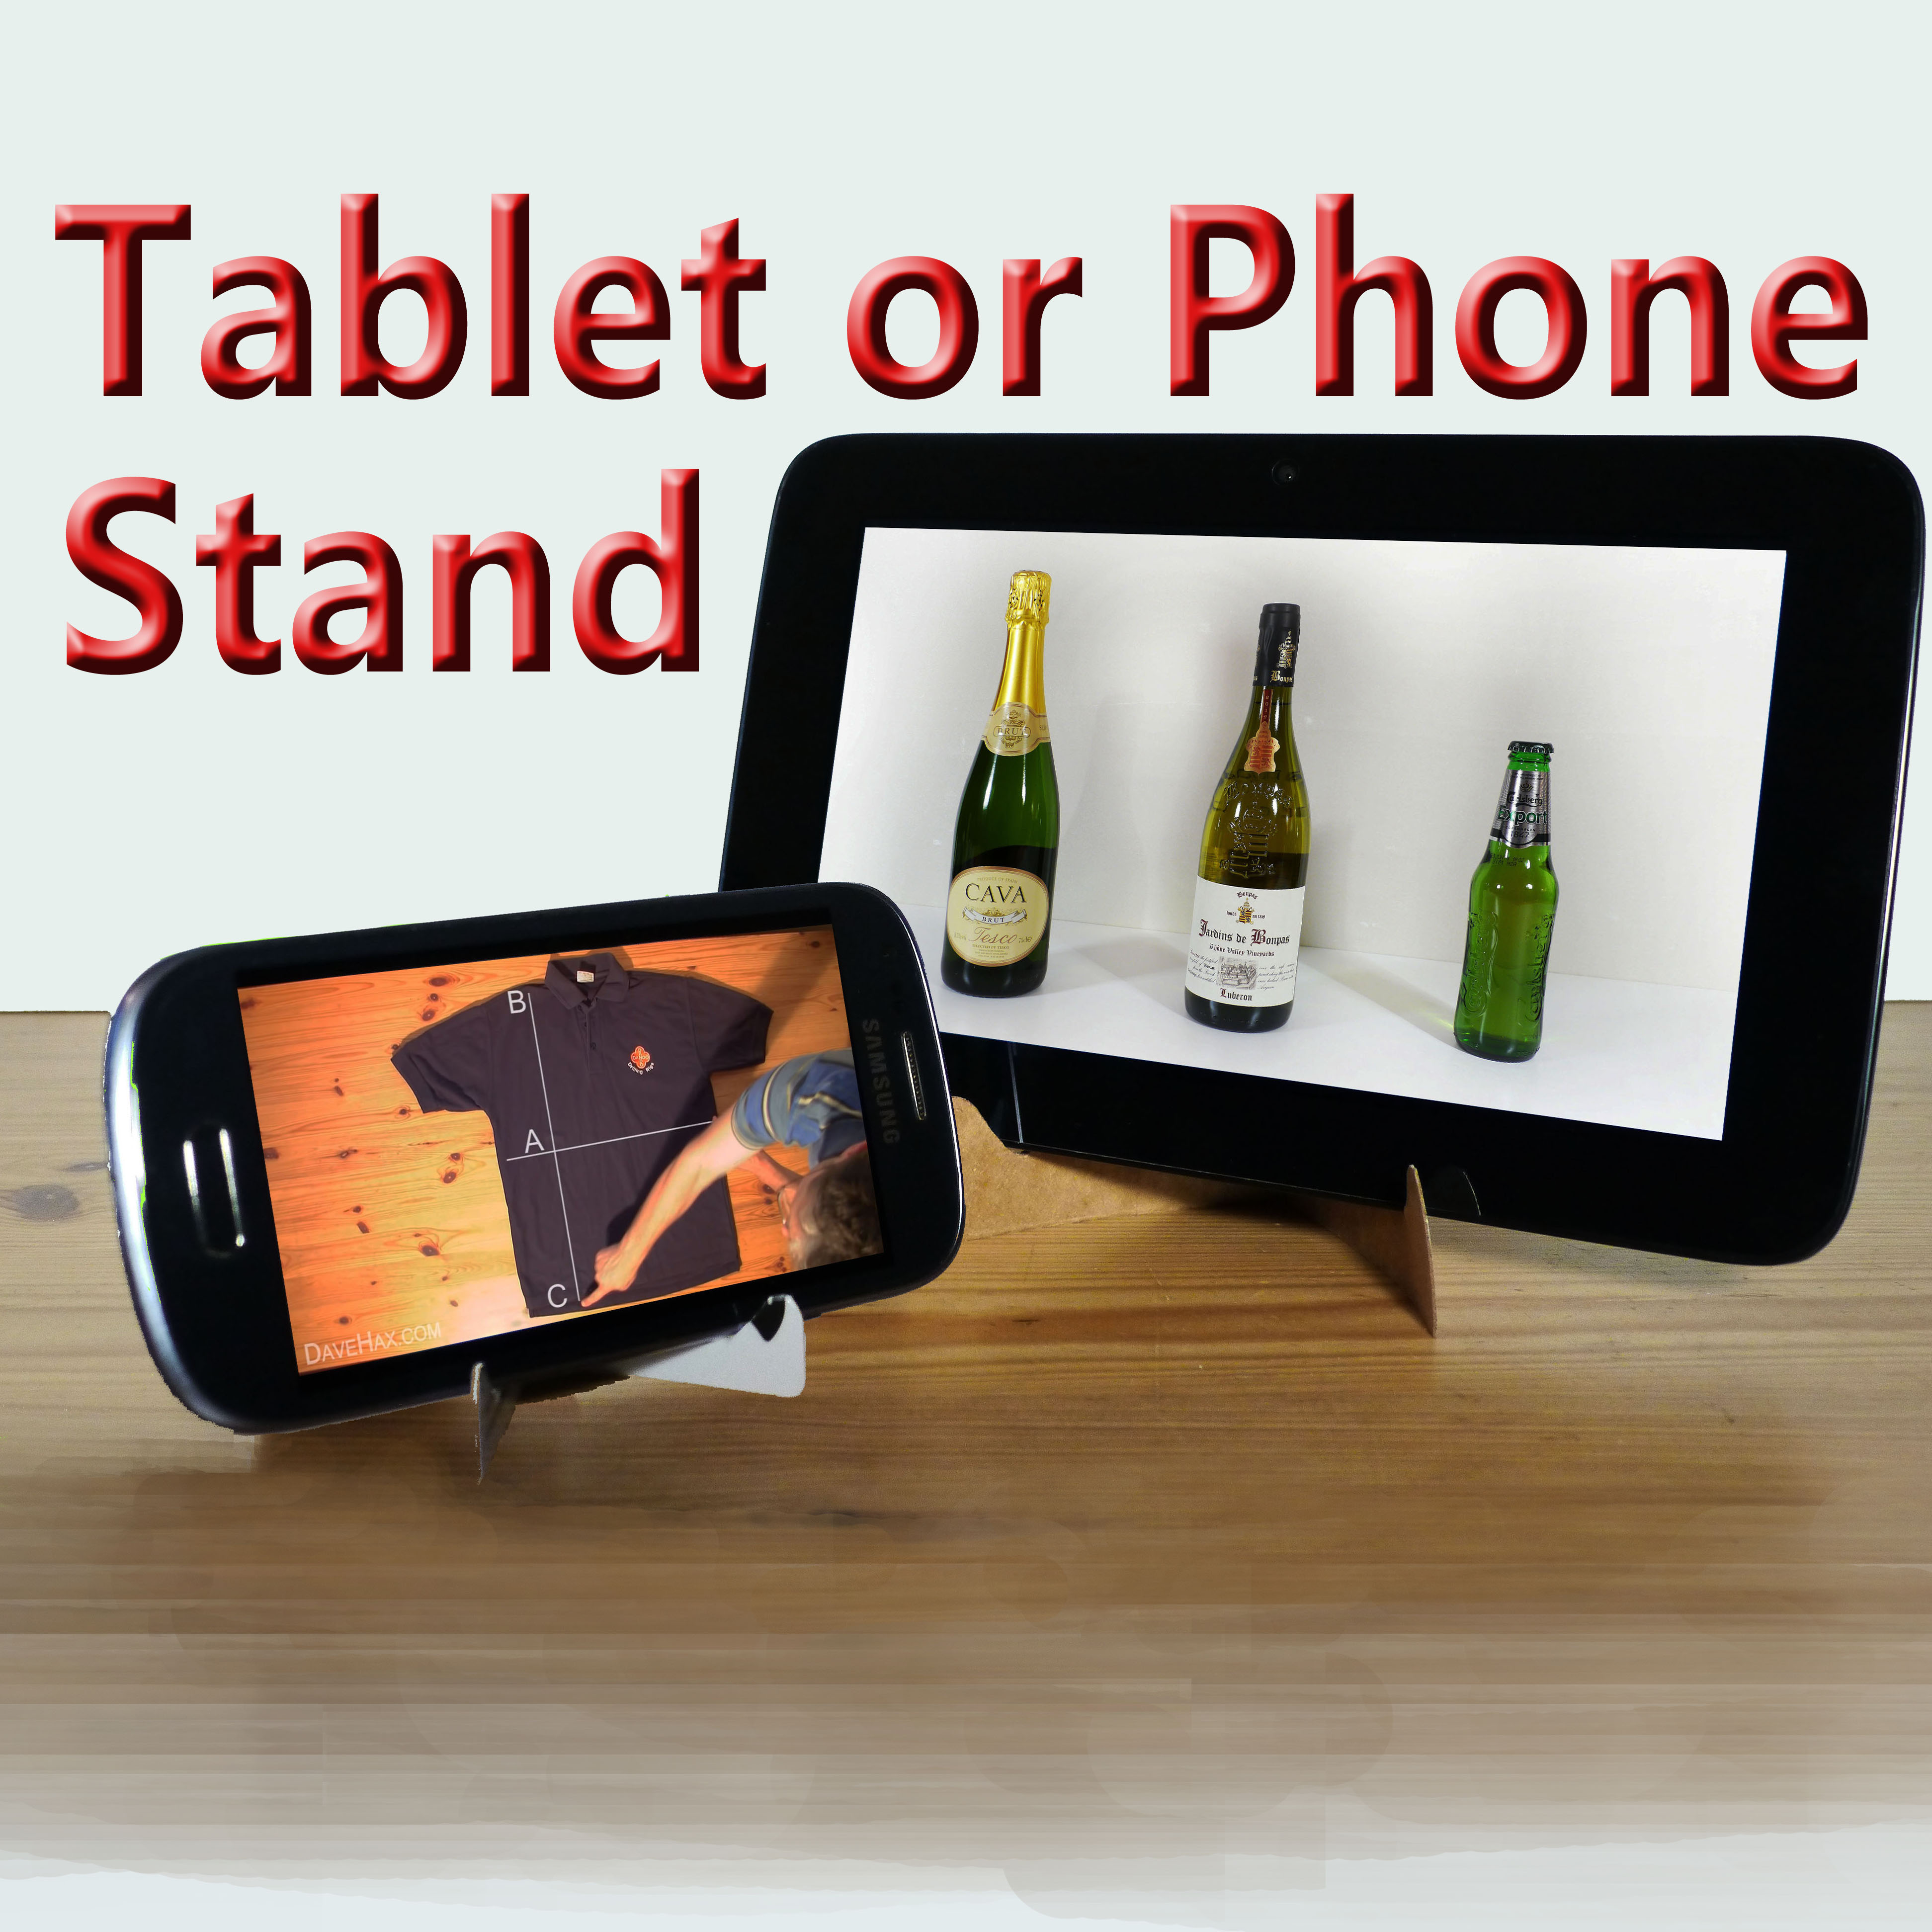 How to Make a Phone or Tablet Stand